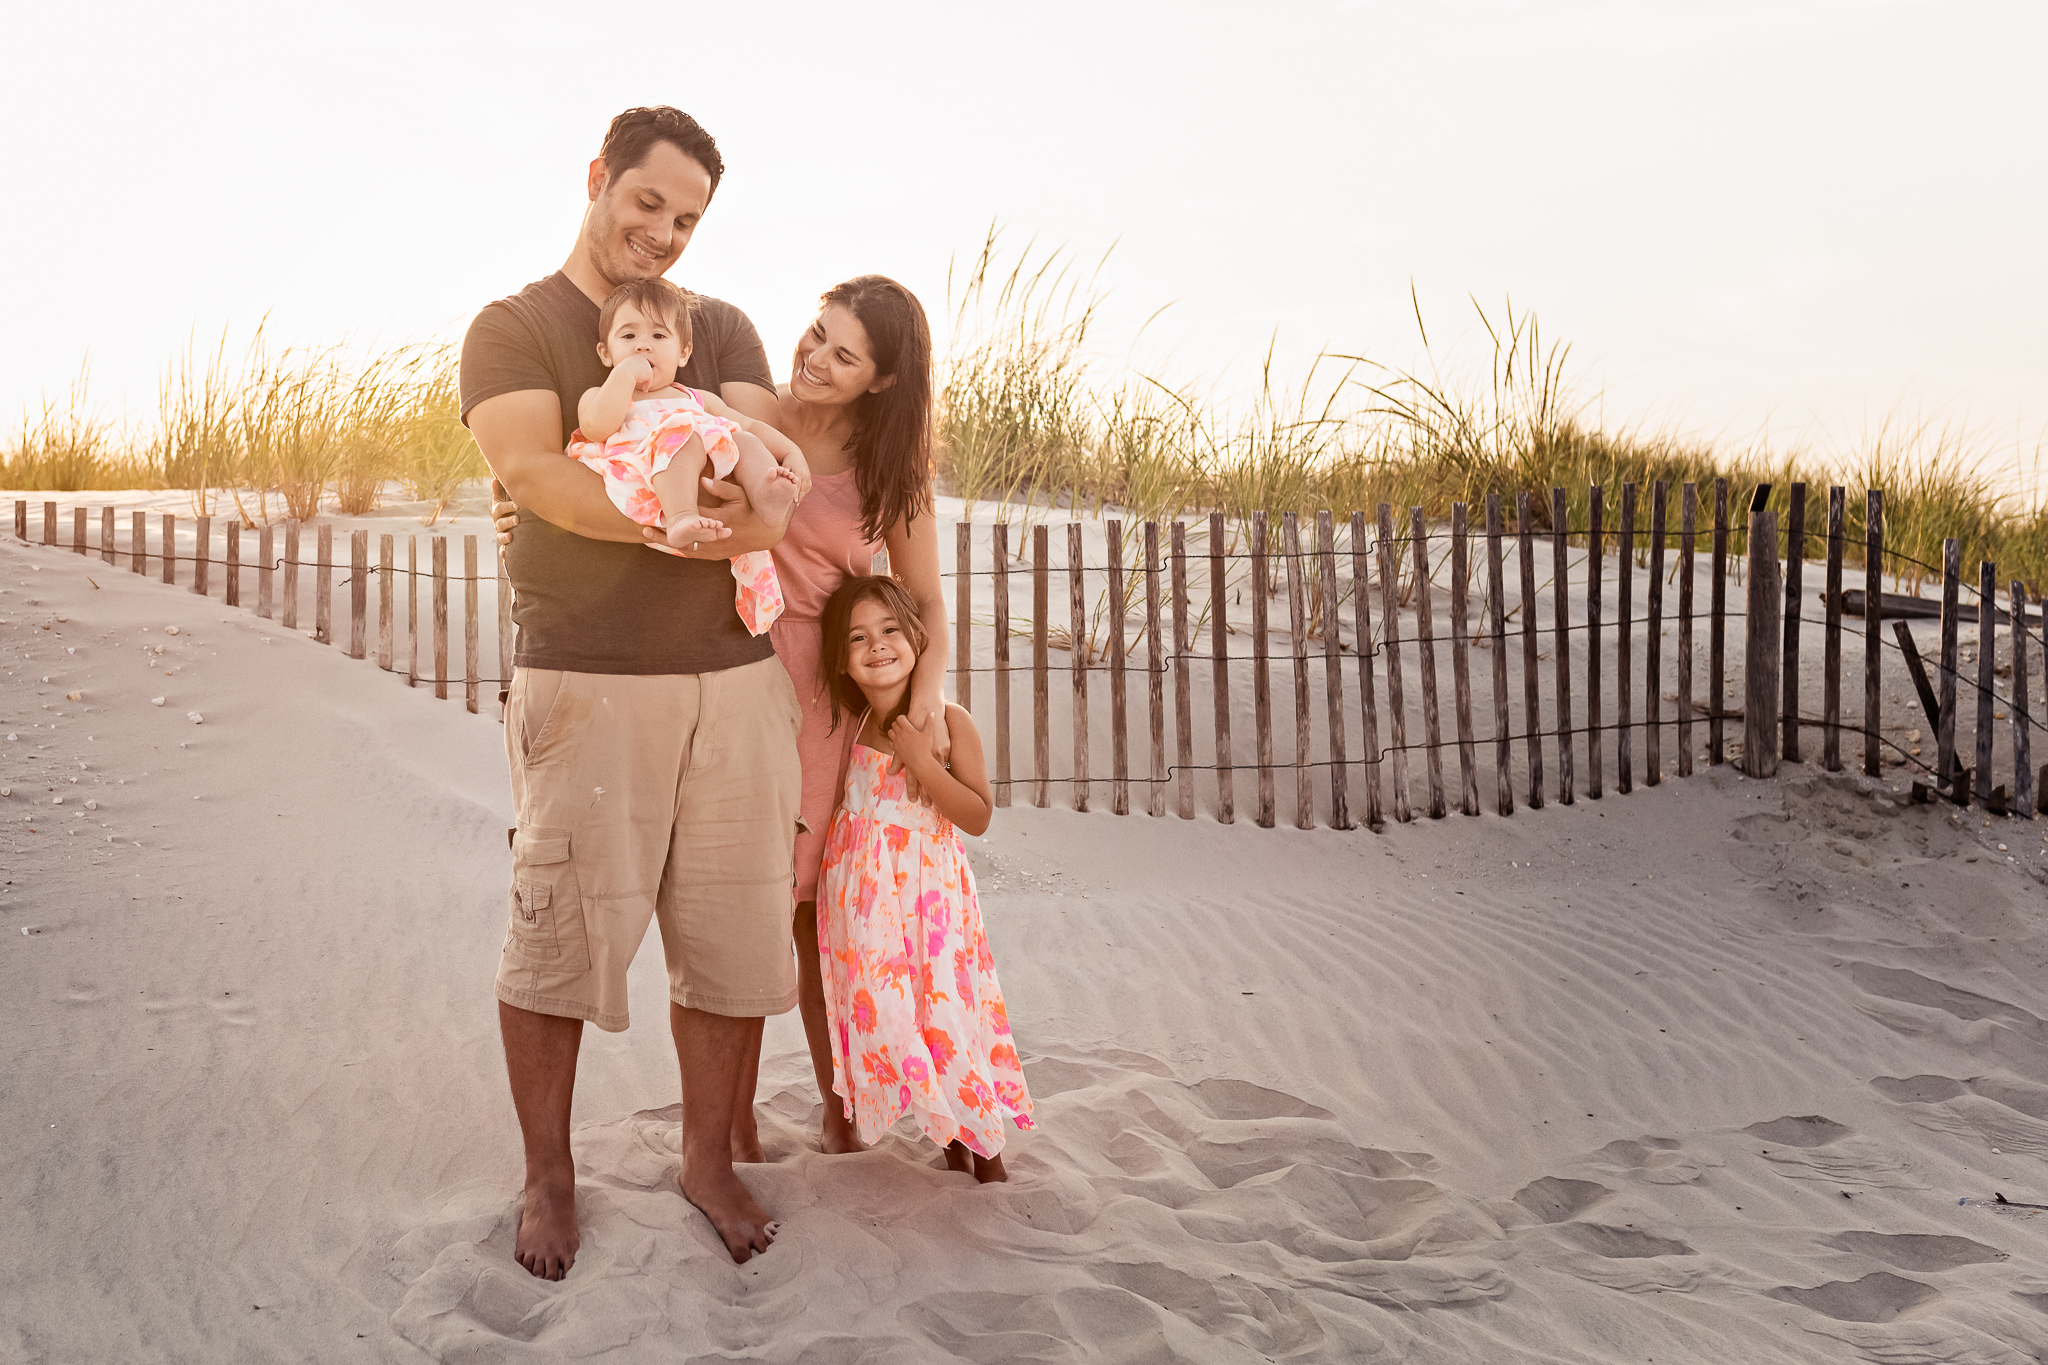 NancyElizabethPhotography, South Jersey Photographer, Family of 4 Standing By Beach Dunes